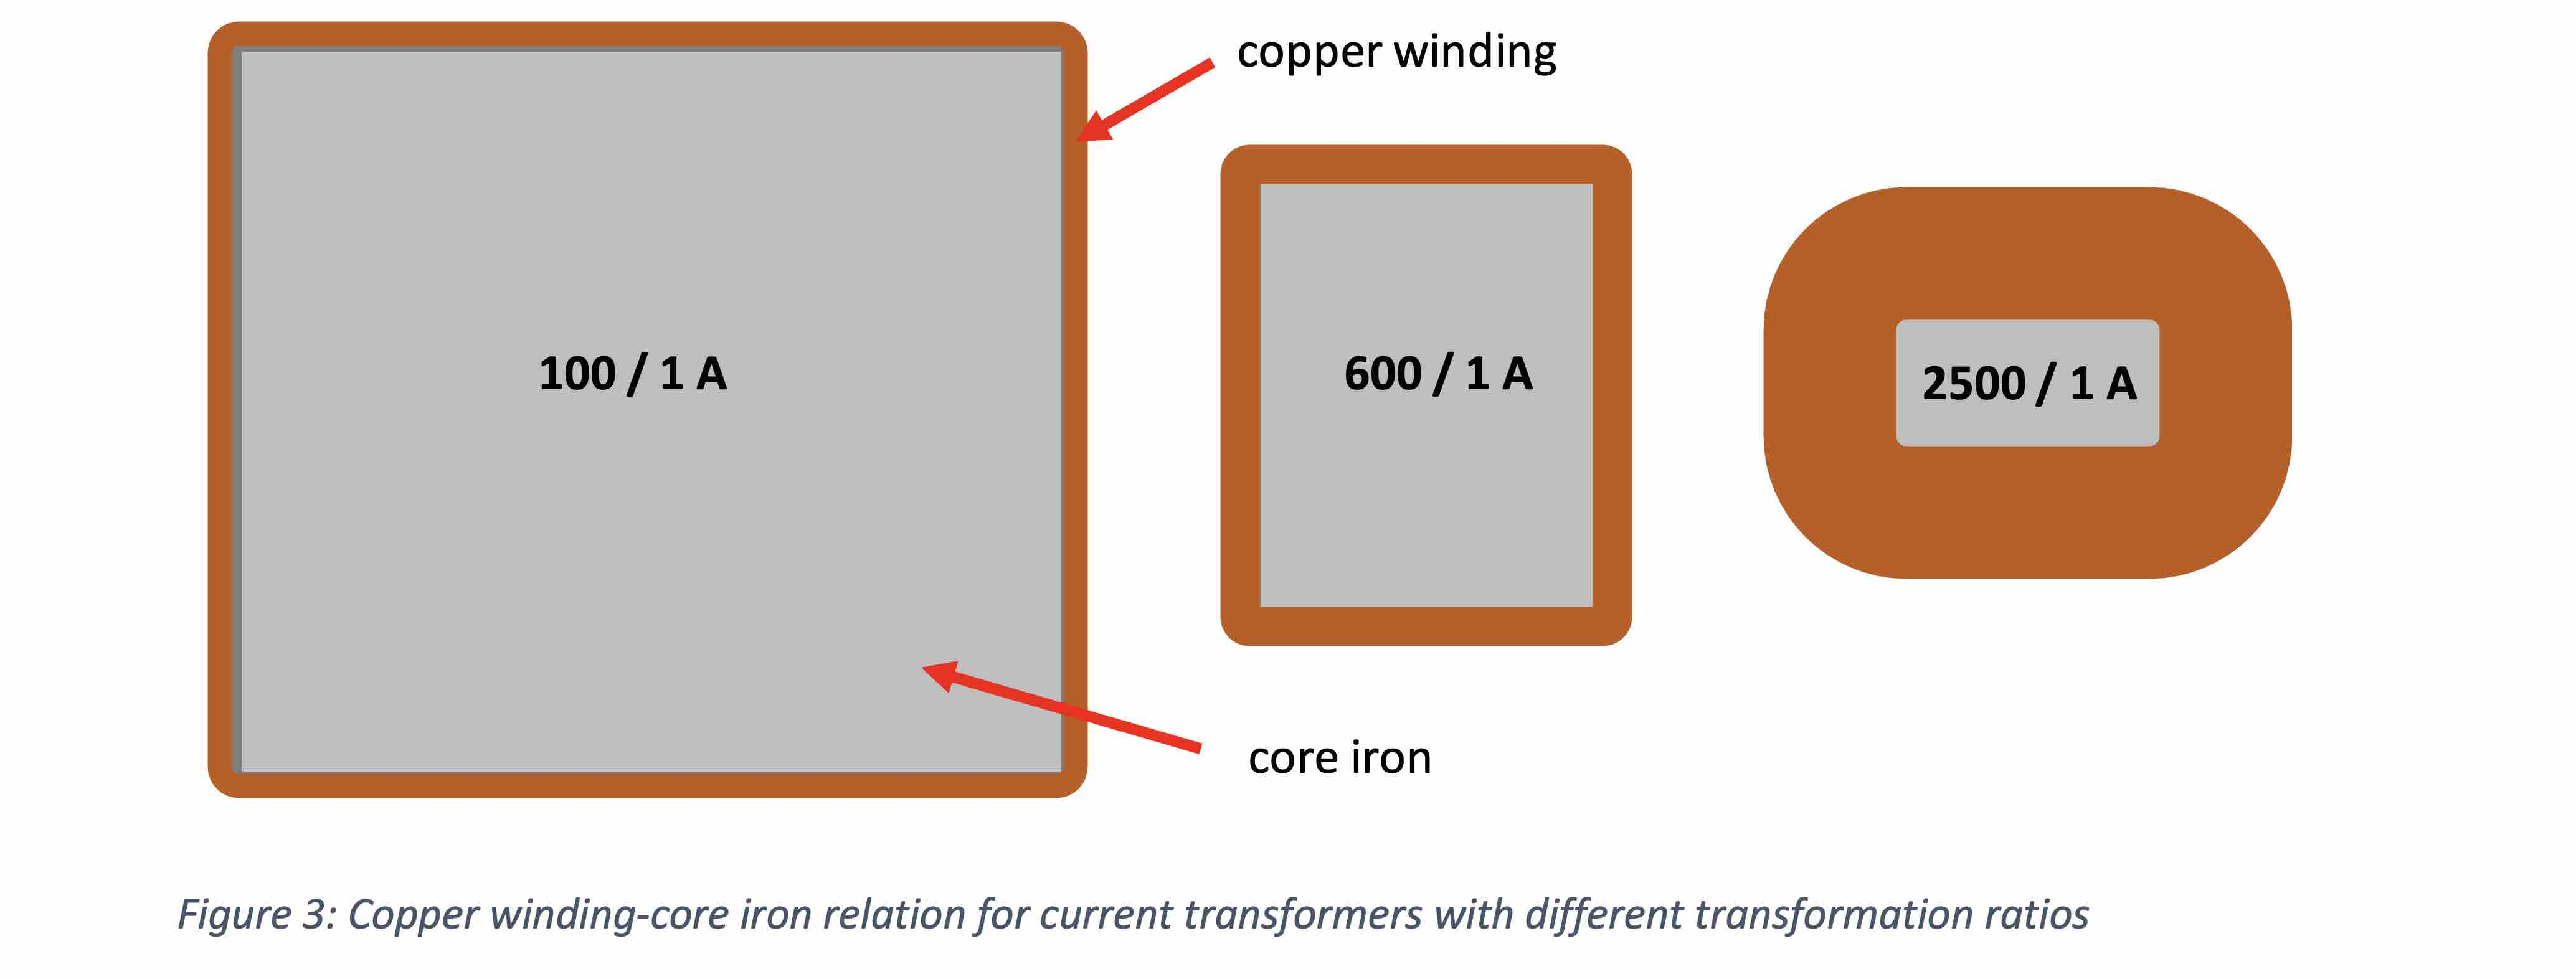 MBS, MBS AG, Current transformer, magnetic flux, low voltage transformer, winding transformer, winding current transformer, electrical engineering, Alexander Muth